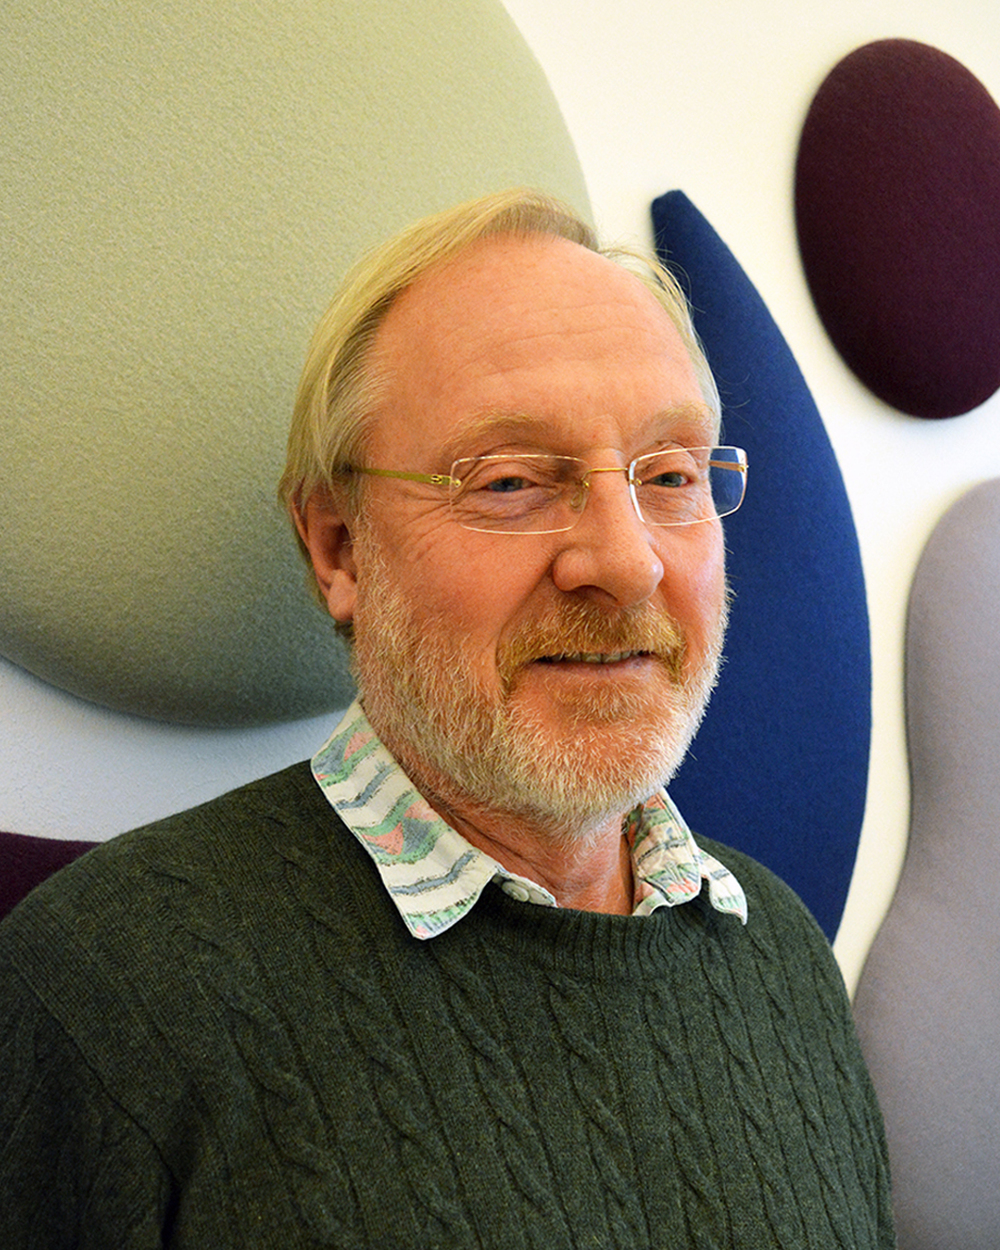 Prof. Per Kjellbom, PhD, Biochemistry and Structural biology, Lund University